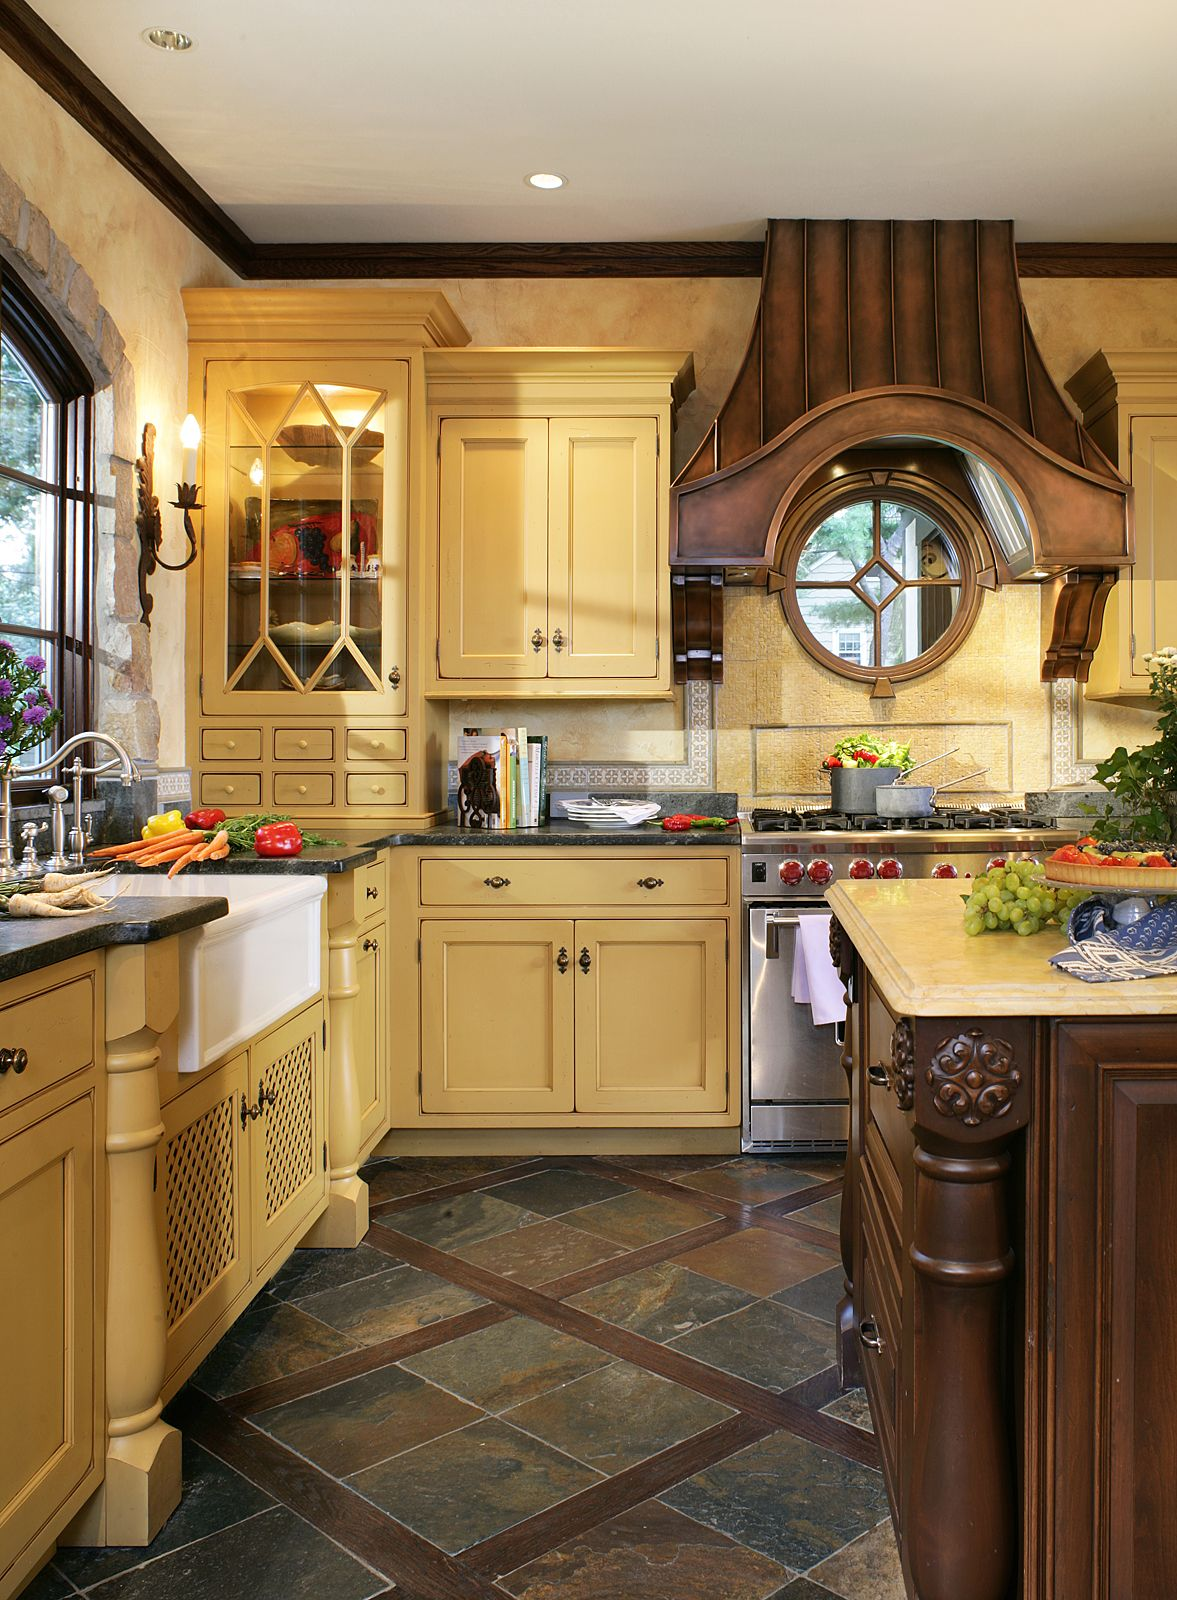 Timeless French Country Kitchen With Old World Ambiance Featuring Mustard Colo French Country Kitchen Cabinets Country Kitchen Designs French Country Kitchens